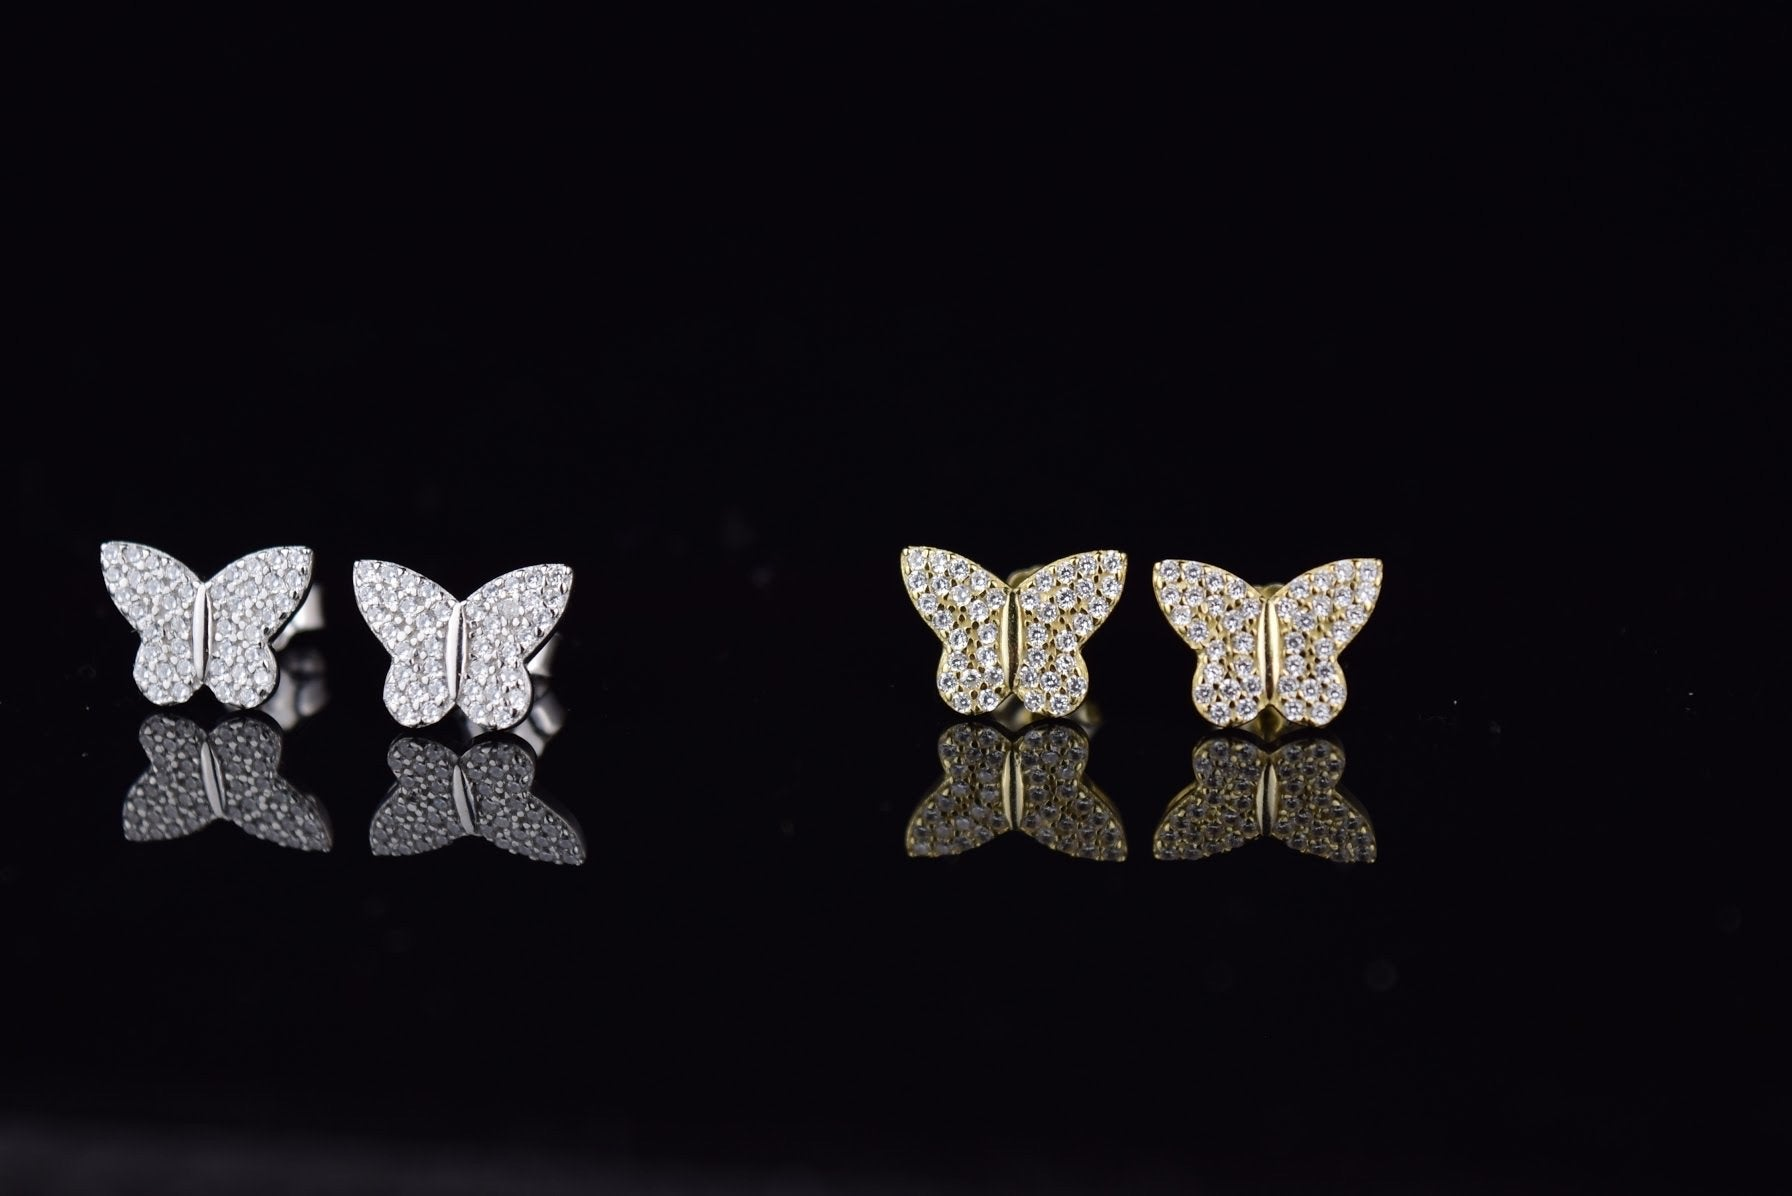 'BUTTERFLY CRYSTAL STUDS' - SHOP PAIGE